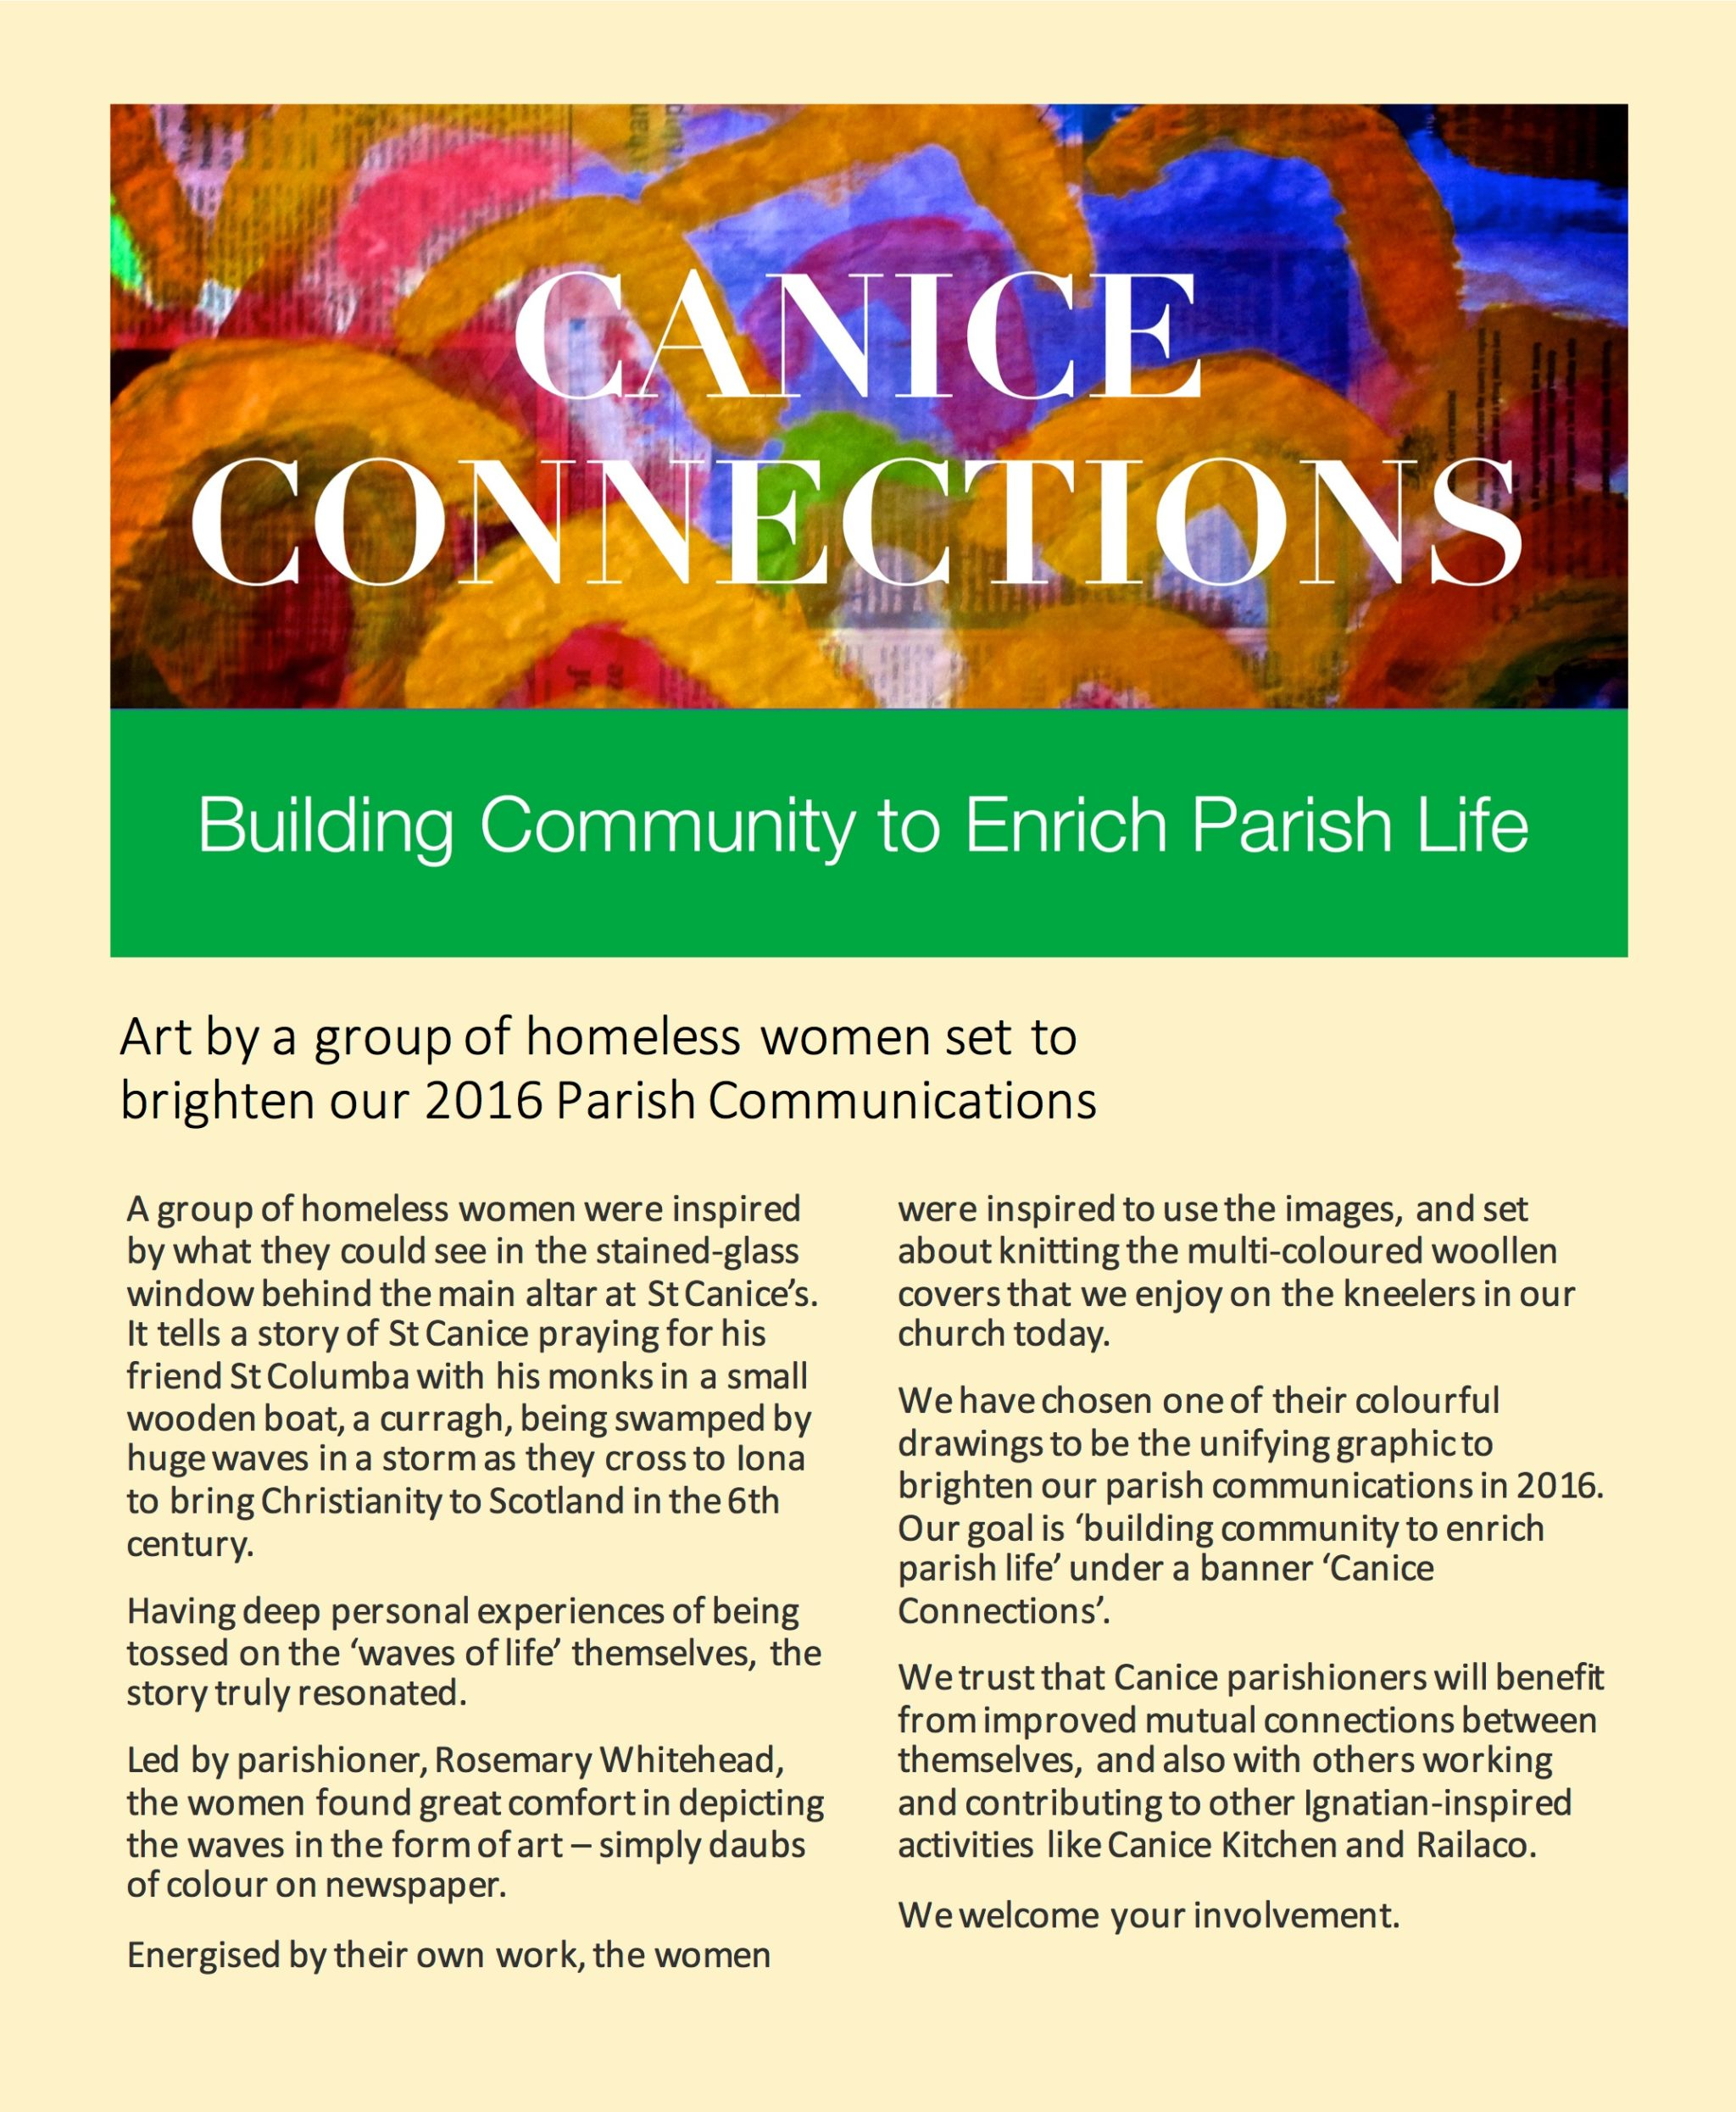 Canice Art and Connections